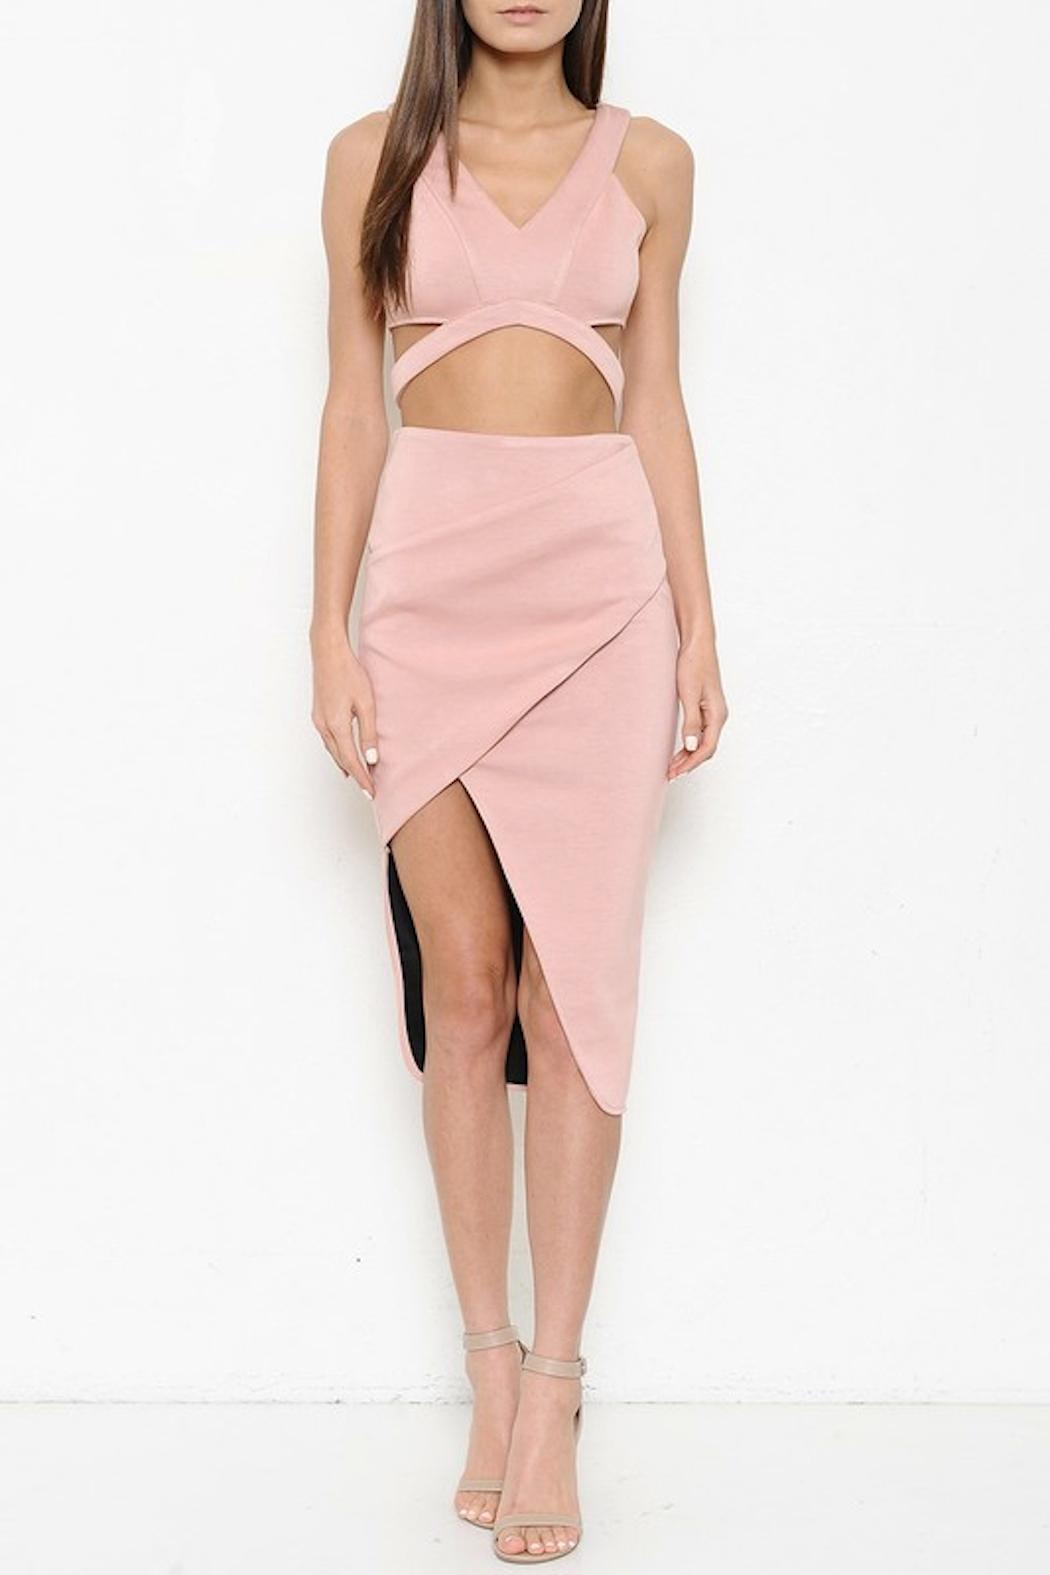 Latiste Origami Skirt Set From Los Angeles By Snatched Fashion